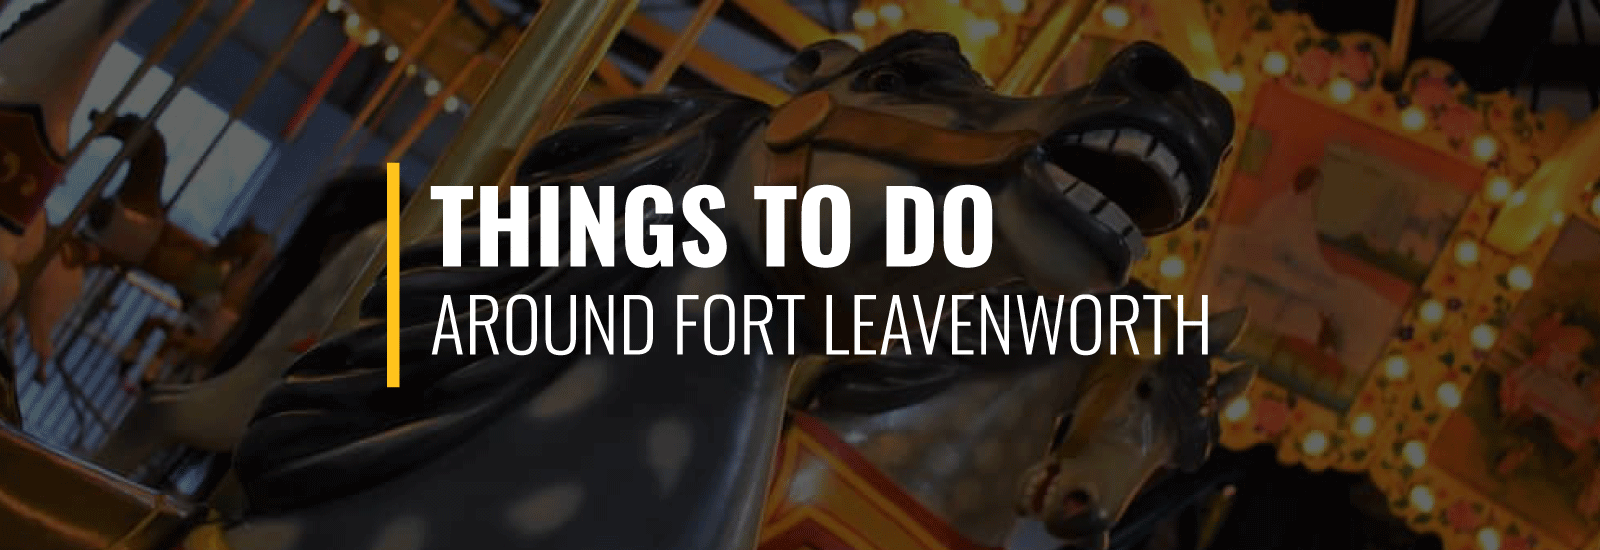 Things to Do Around Fort Leavenworth